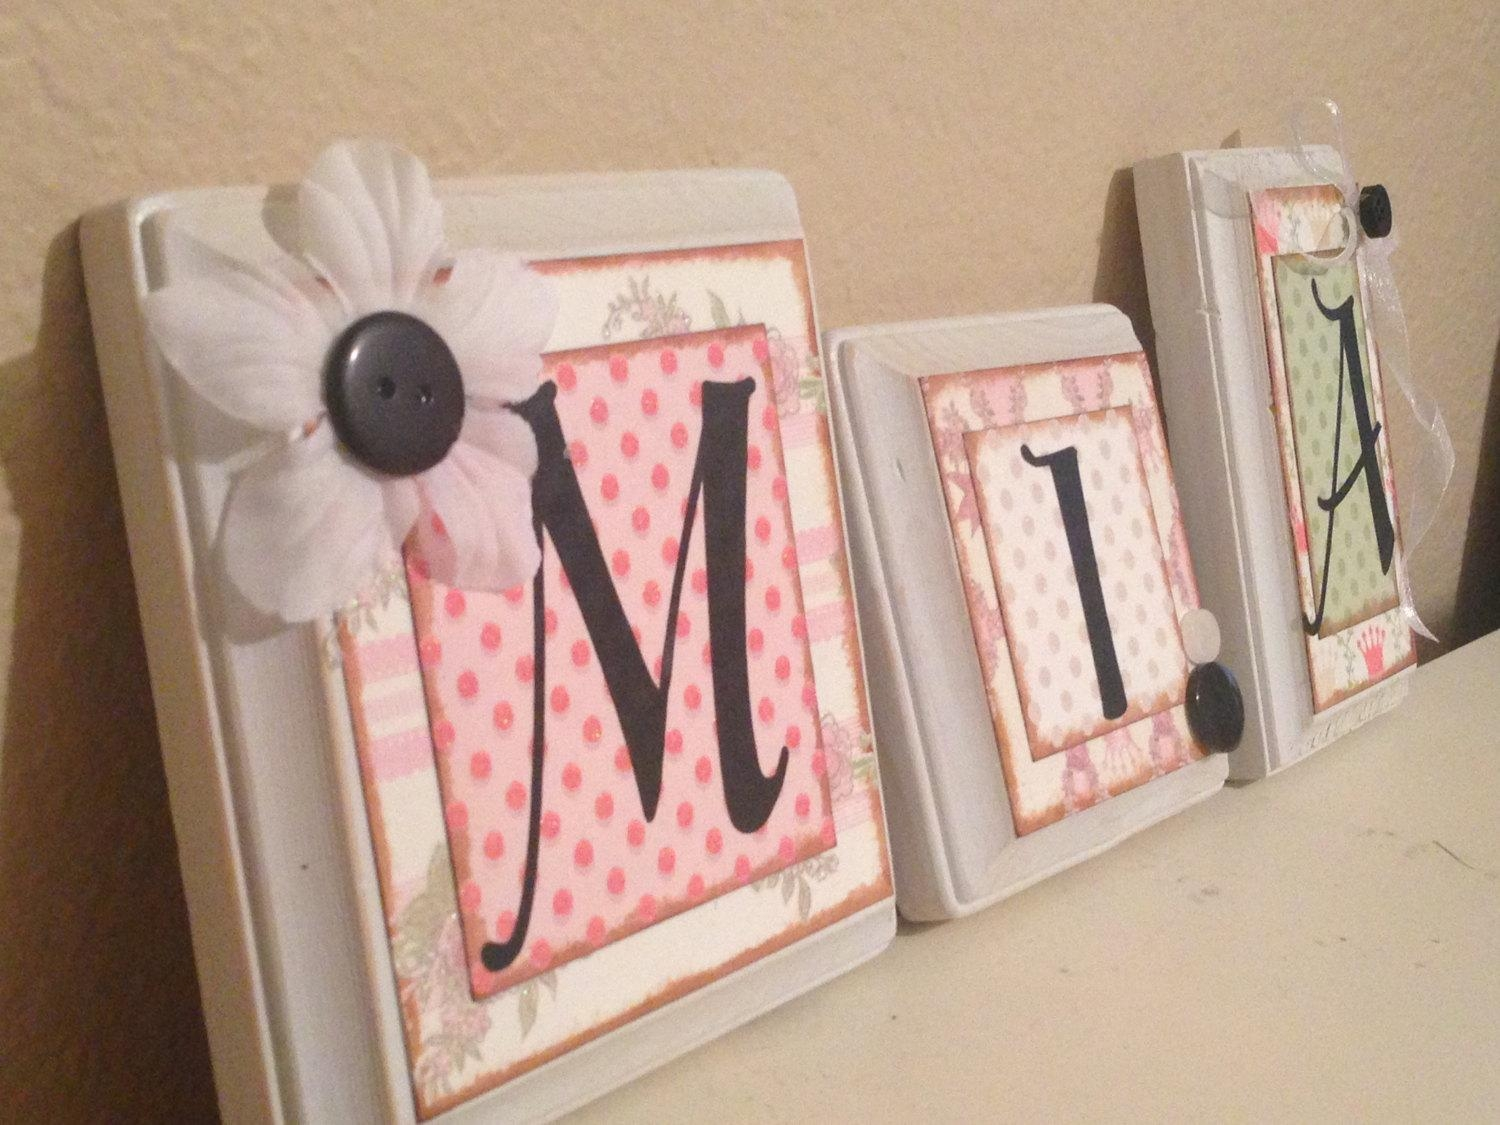 Wall Art Designs: Personalized Name Wall Art Letters Decorative With Personalized Wall Art With Names (Image 14 of 20)